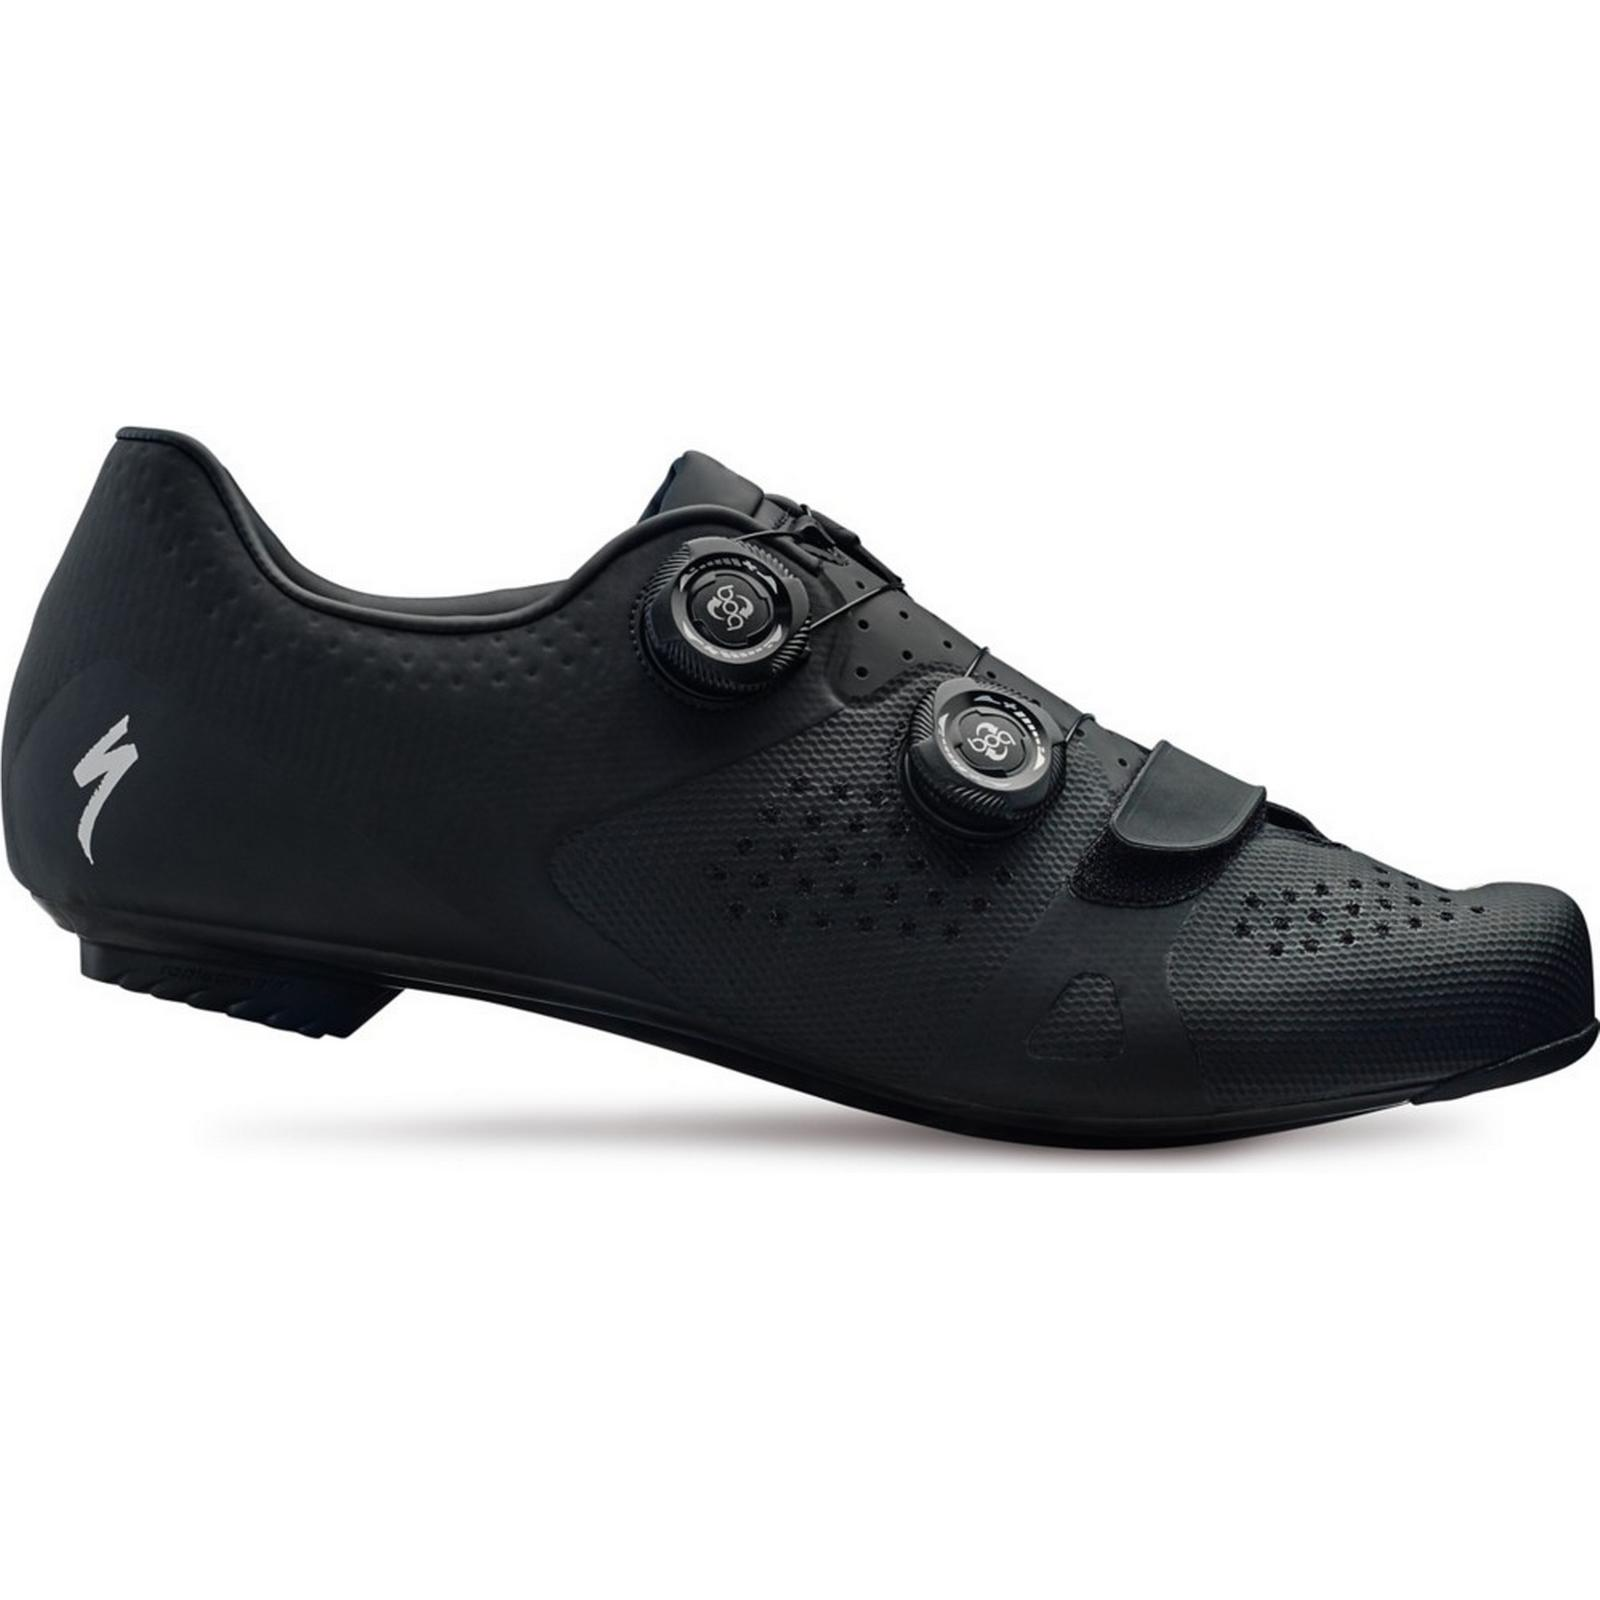 Leisure Bikes Lakes Bikes Leisure Specialized Torch 3.0 Road Shoes Black 7a5bfb